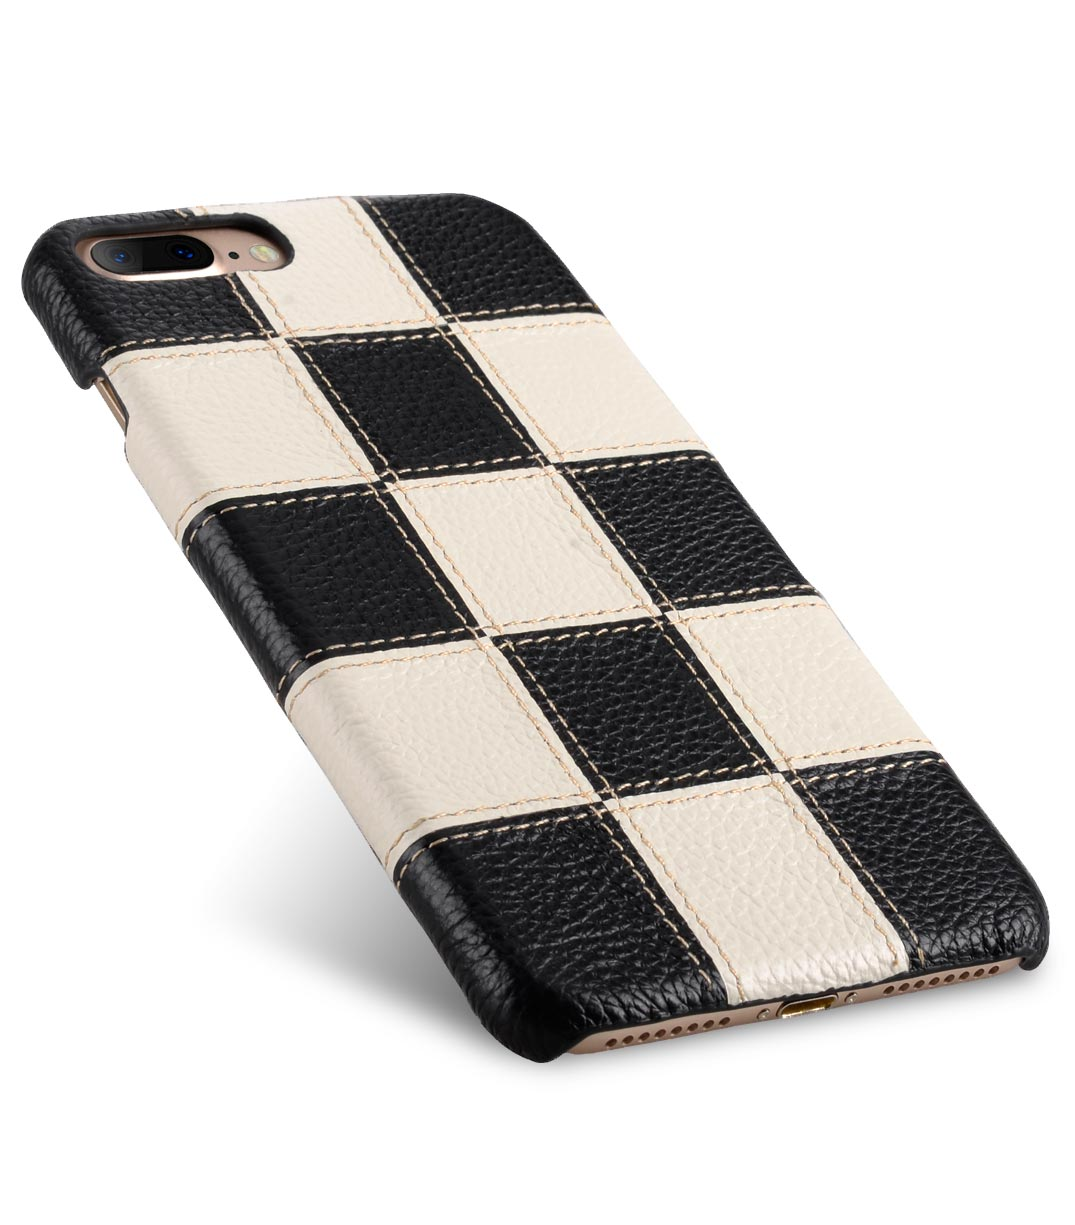 """Melkco Patchwork Series Premium Leather Snap Cover for Apple iPhone 7 / 8 Plus (5.5"""") - Black LC / White LC"""